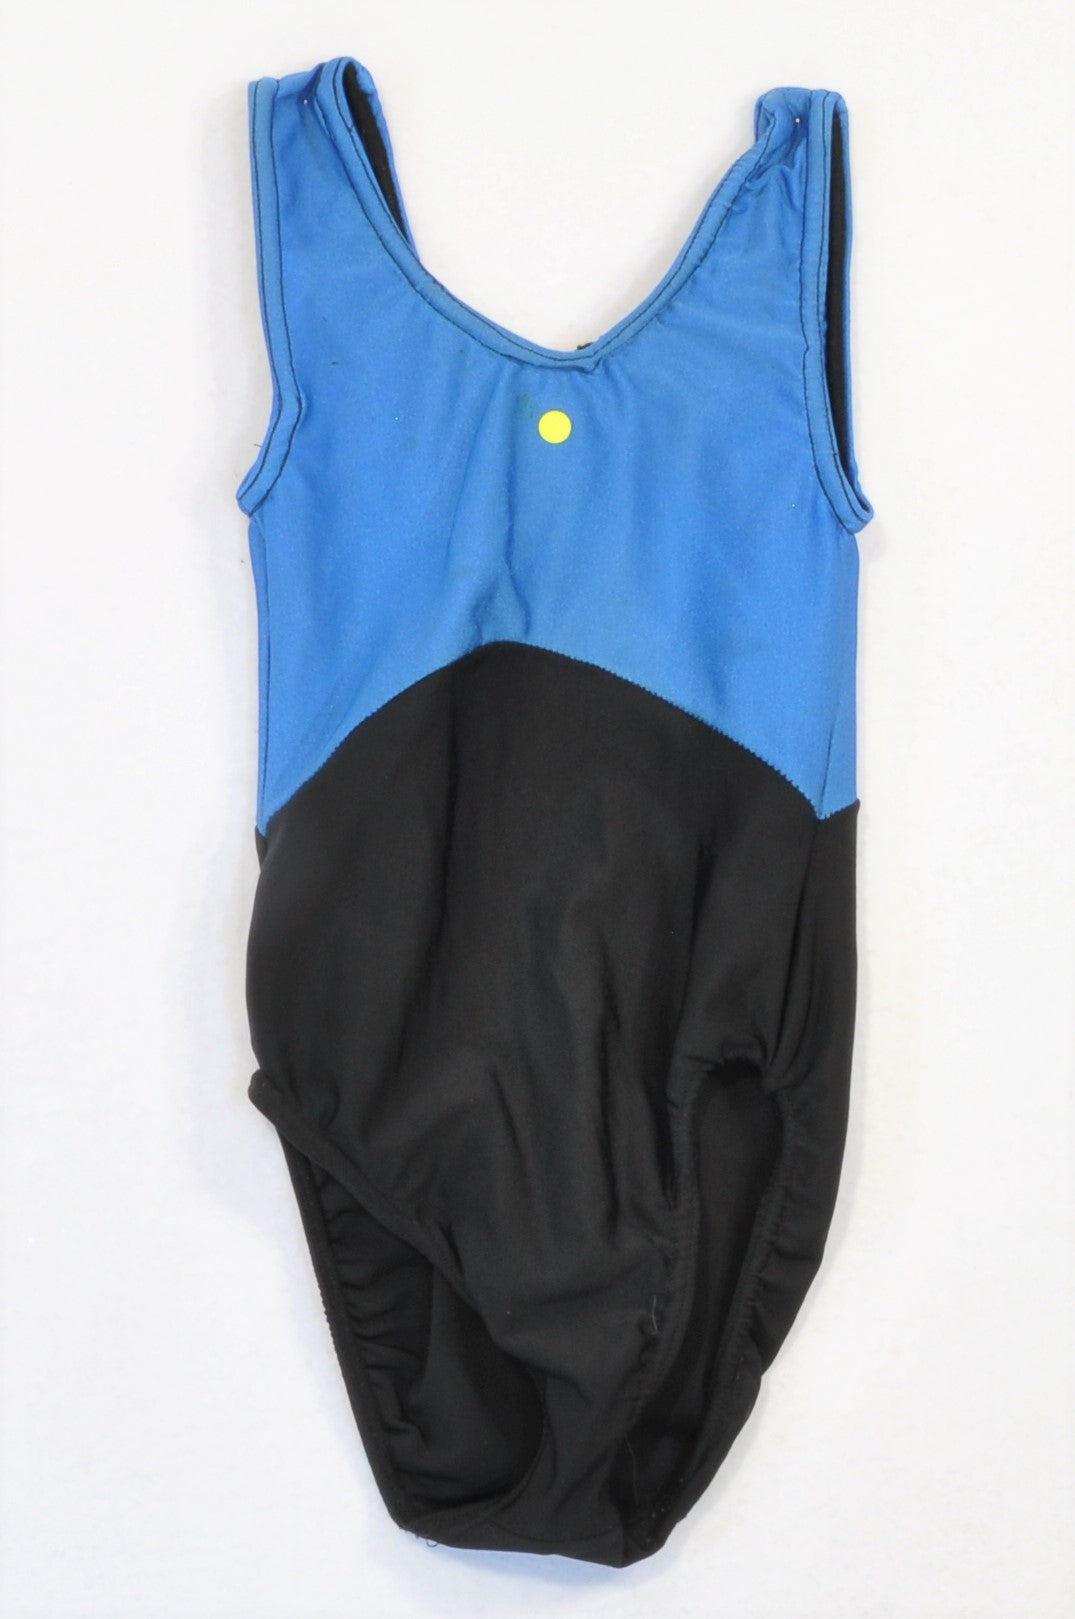 Unbranded Blue & Black Panel Leotard Girls 6-8 years